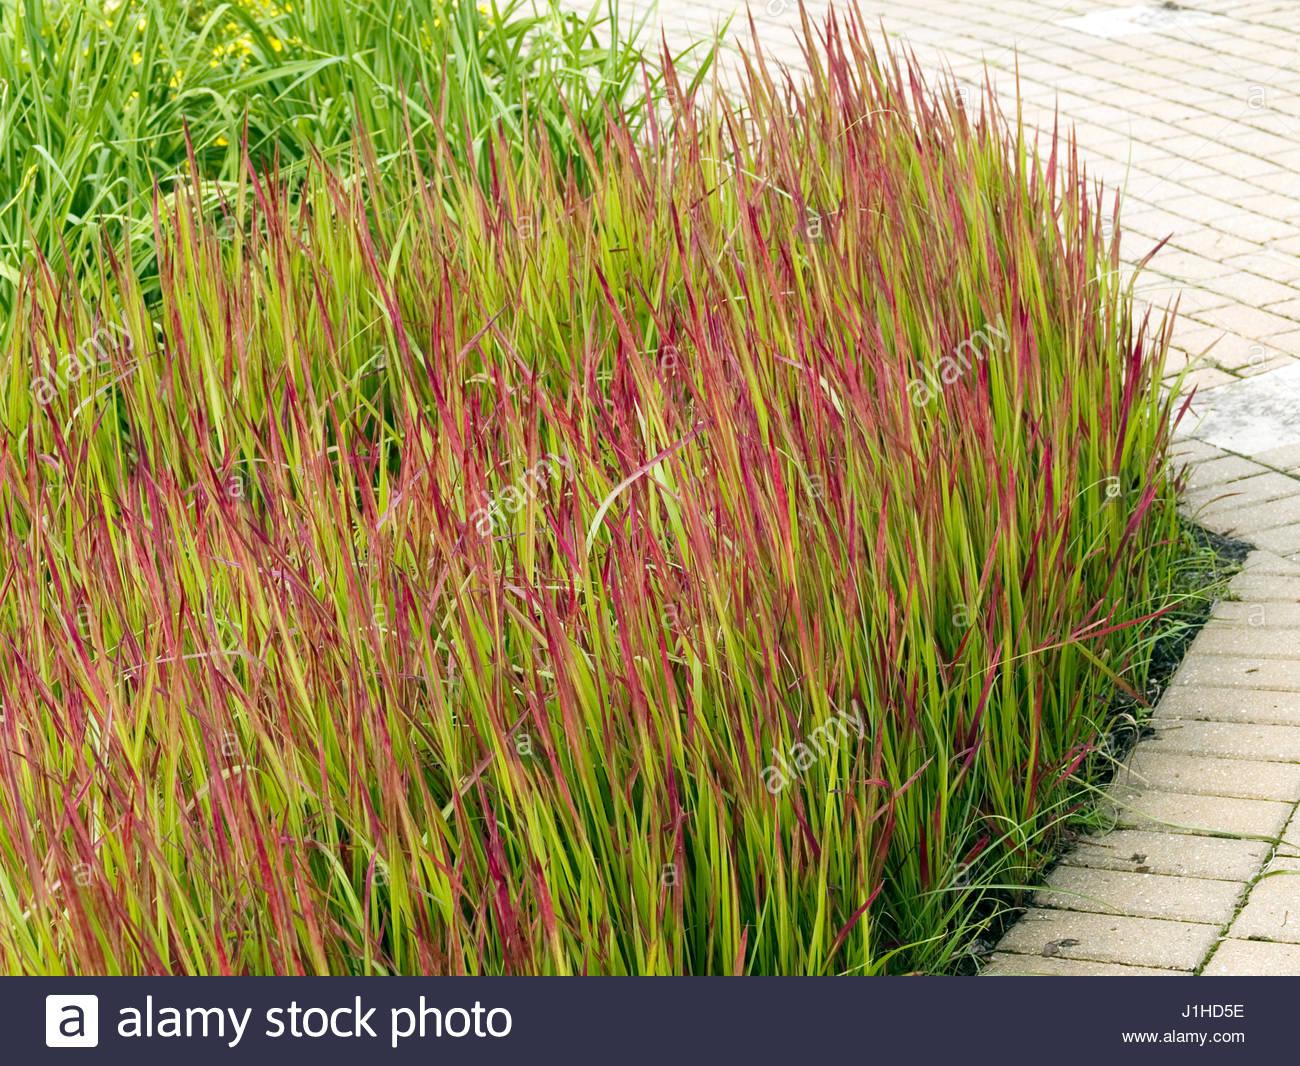 Imperata cylindrica 39 39 red baron 39 39 stock photo 138681130 alamy - Imperata cylindrica red baron ...